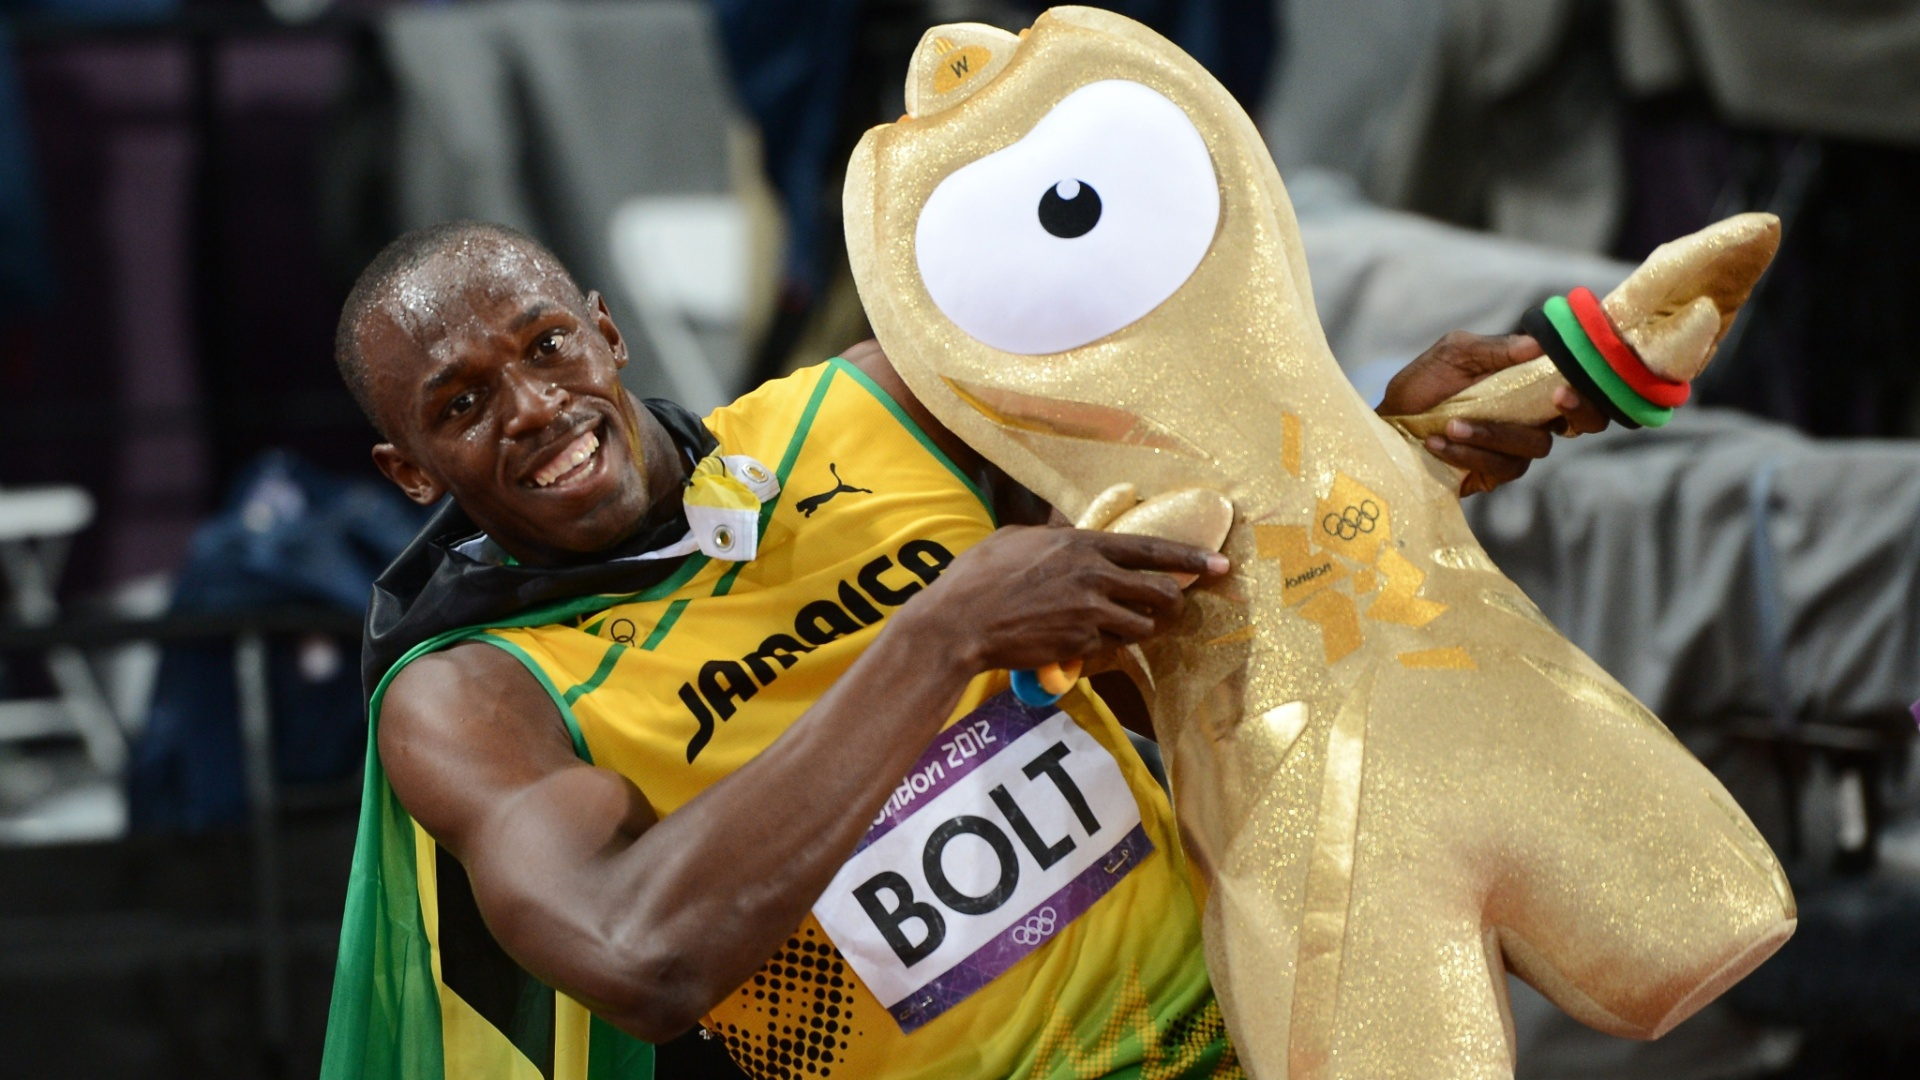 Usain Bolt posa com mascote olmpico Wenlock aps conquistar a medalha de ouro nos 100 m rasos